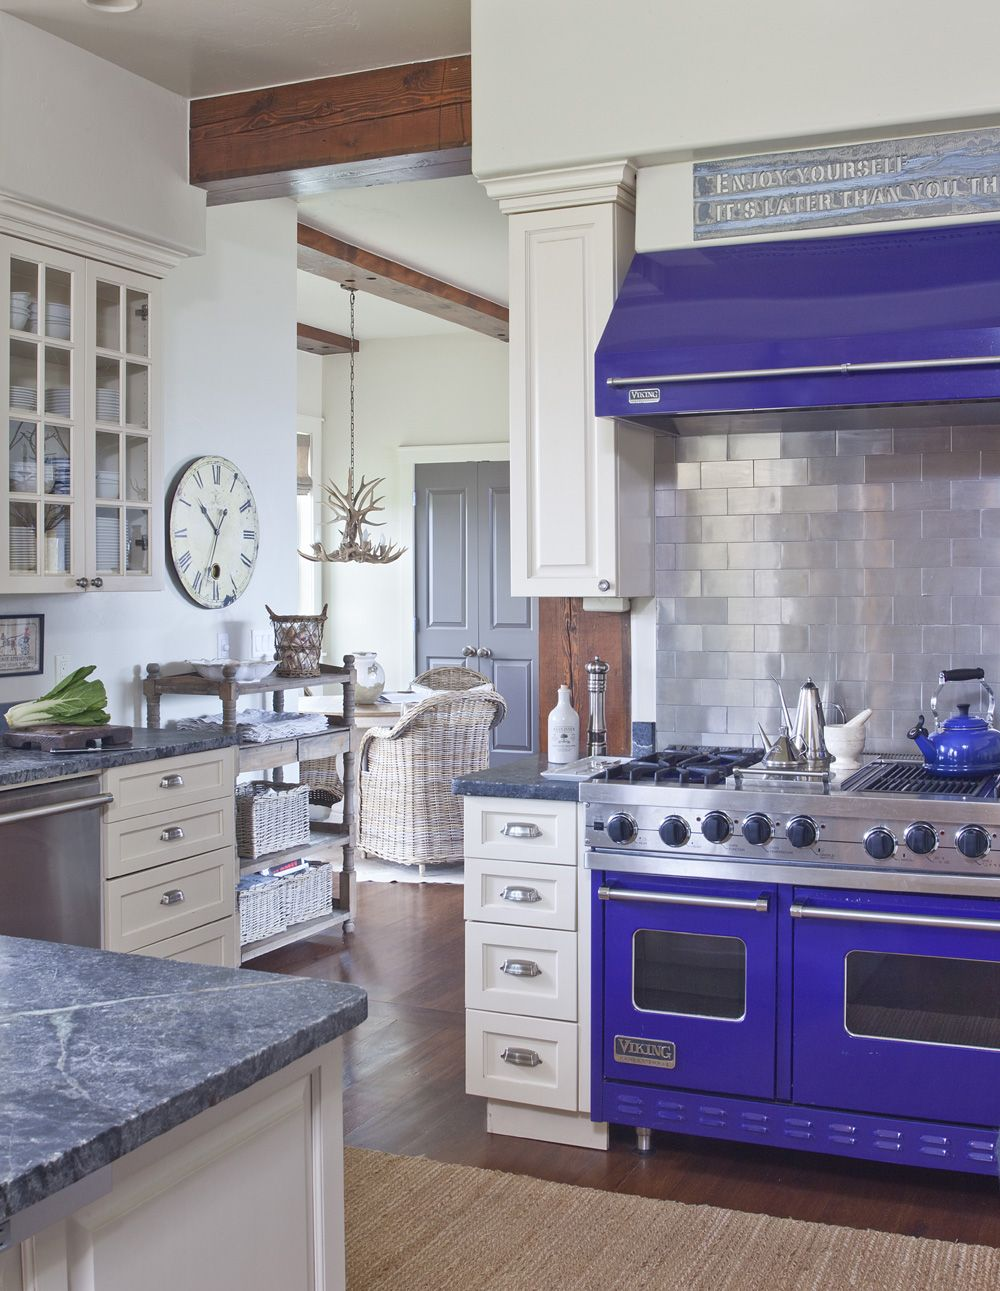 Designed By Jessica Mcintyre Photo By James Ray Spahn For Colorado Homes Lifestyles Magazine Denver Colorado Kitchens Viking Stove Blue Ovens Home